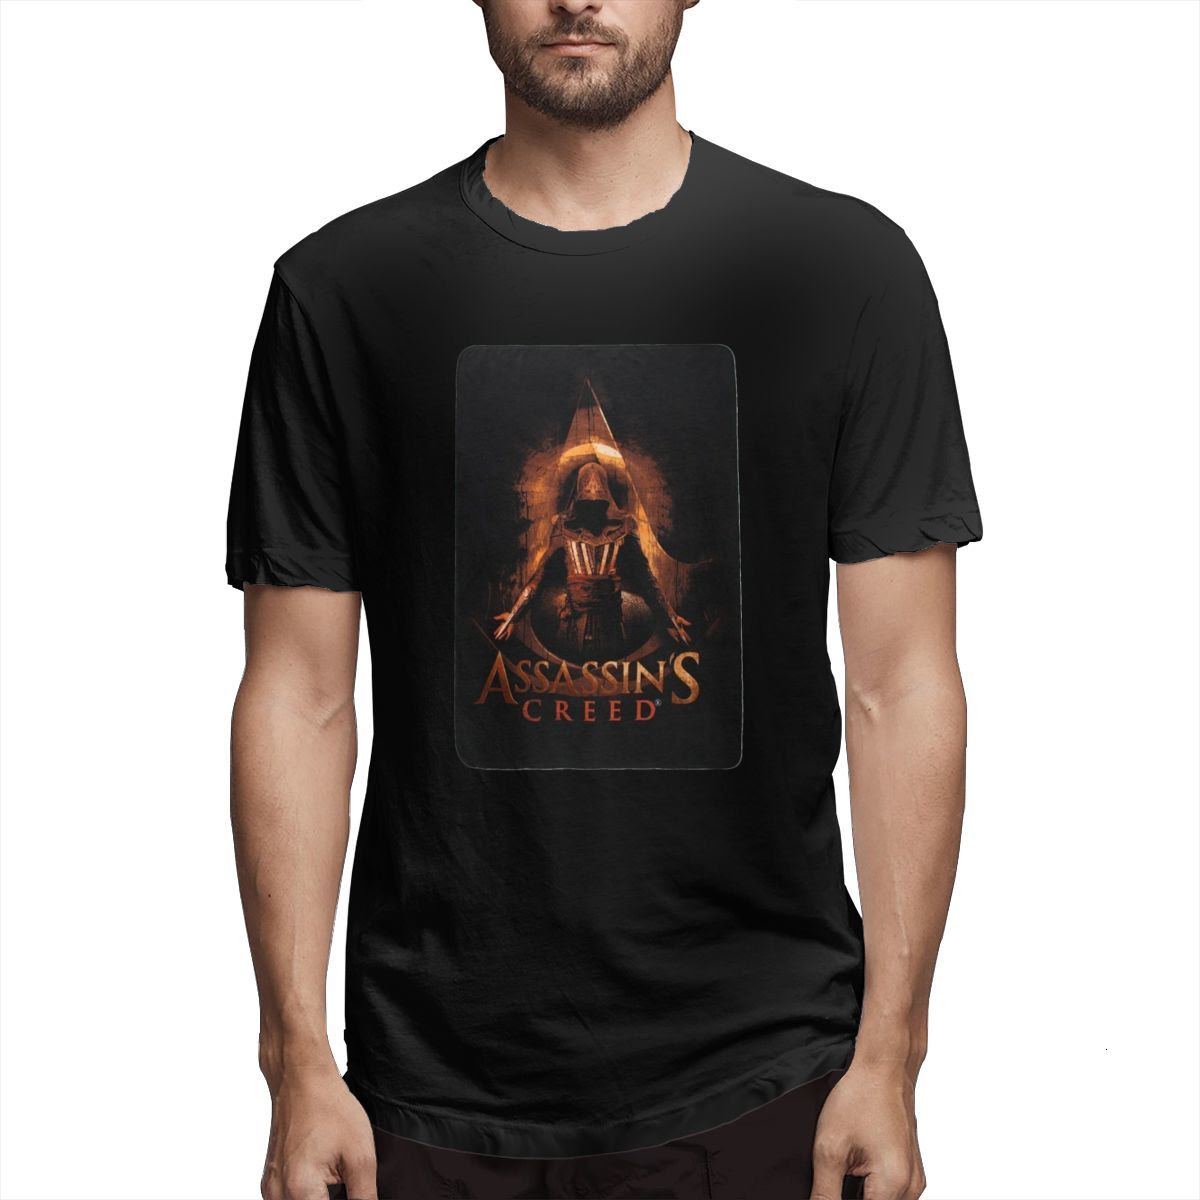 Men T-Shirts Summer Men's Short Sleeve T-shirt Casual Cotton ASSASSIN'S CREED GIFT printing t shirt men tee shirt Fun 5XL